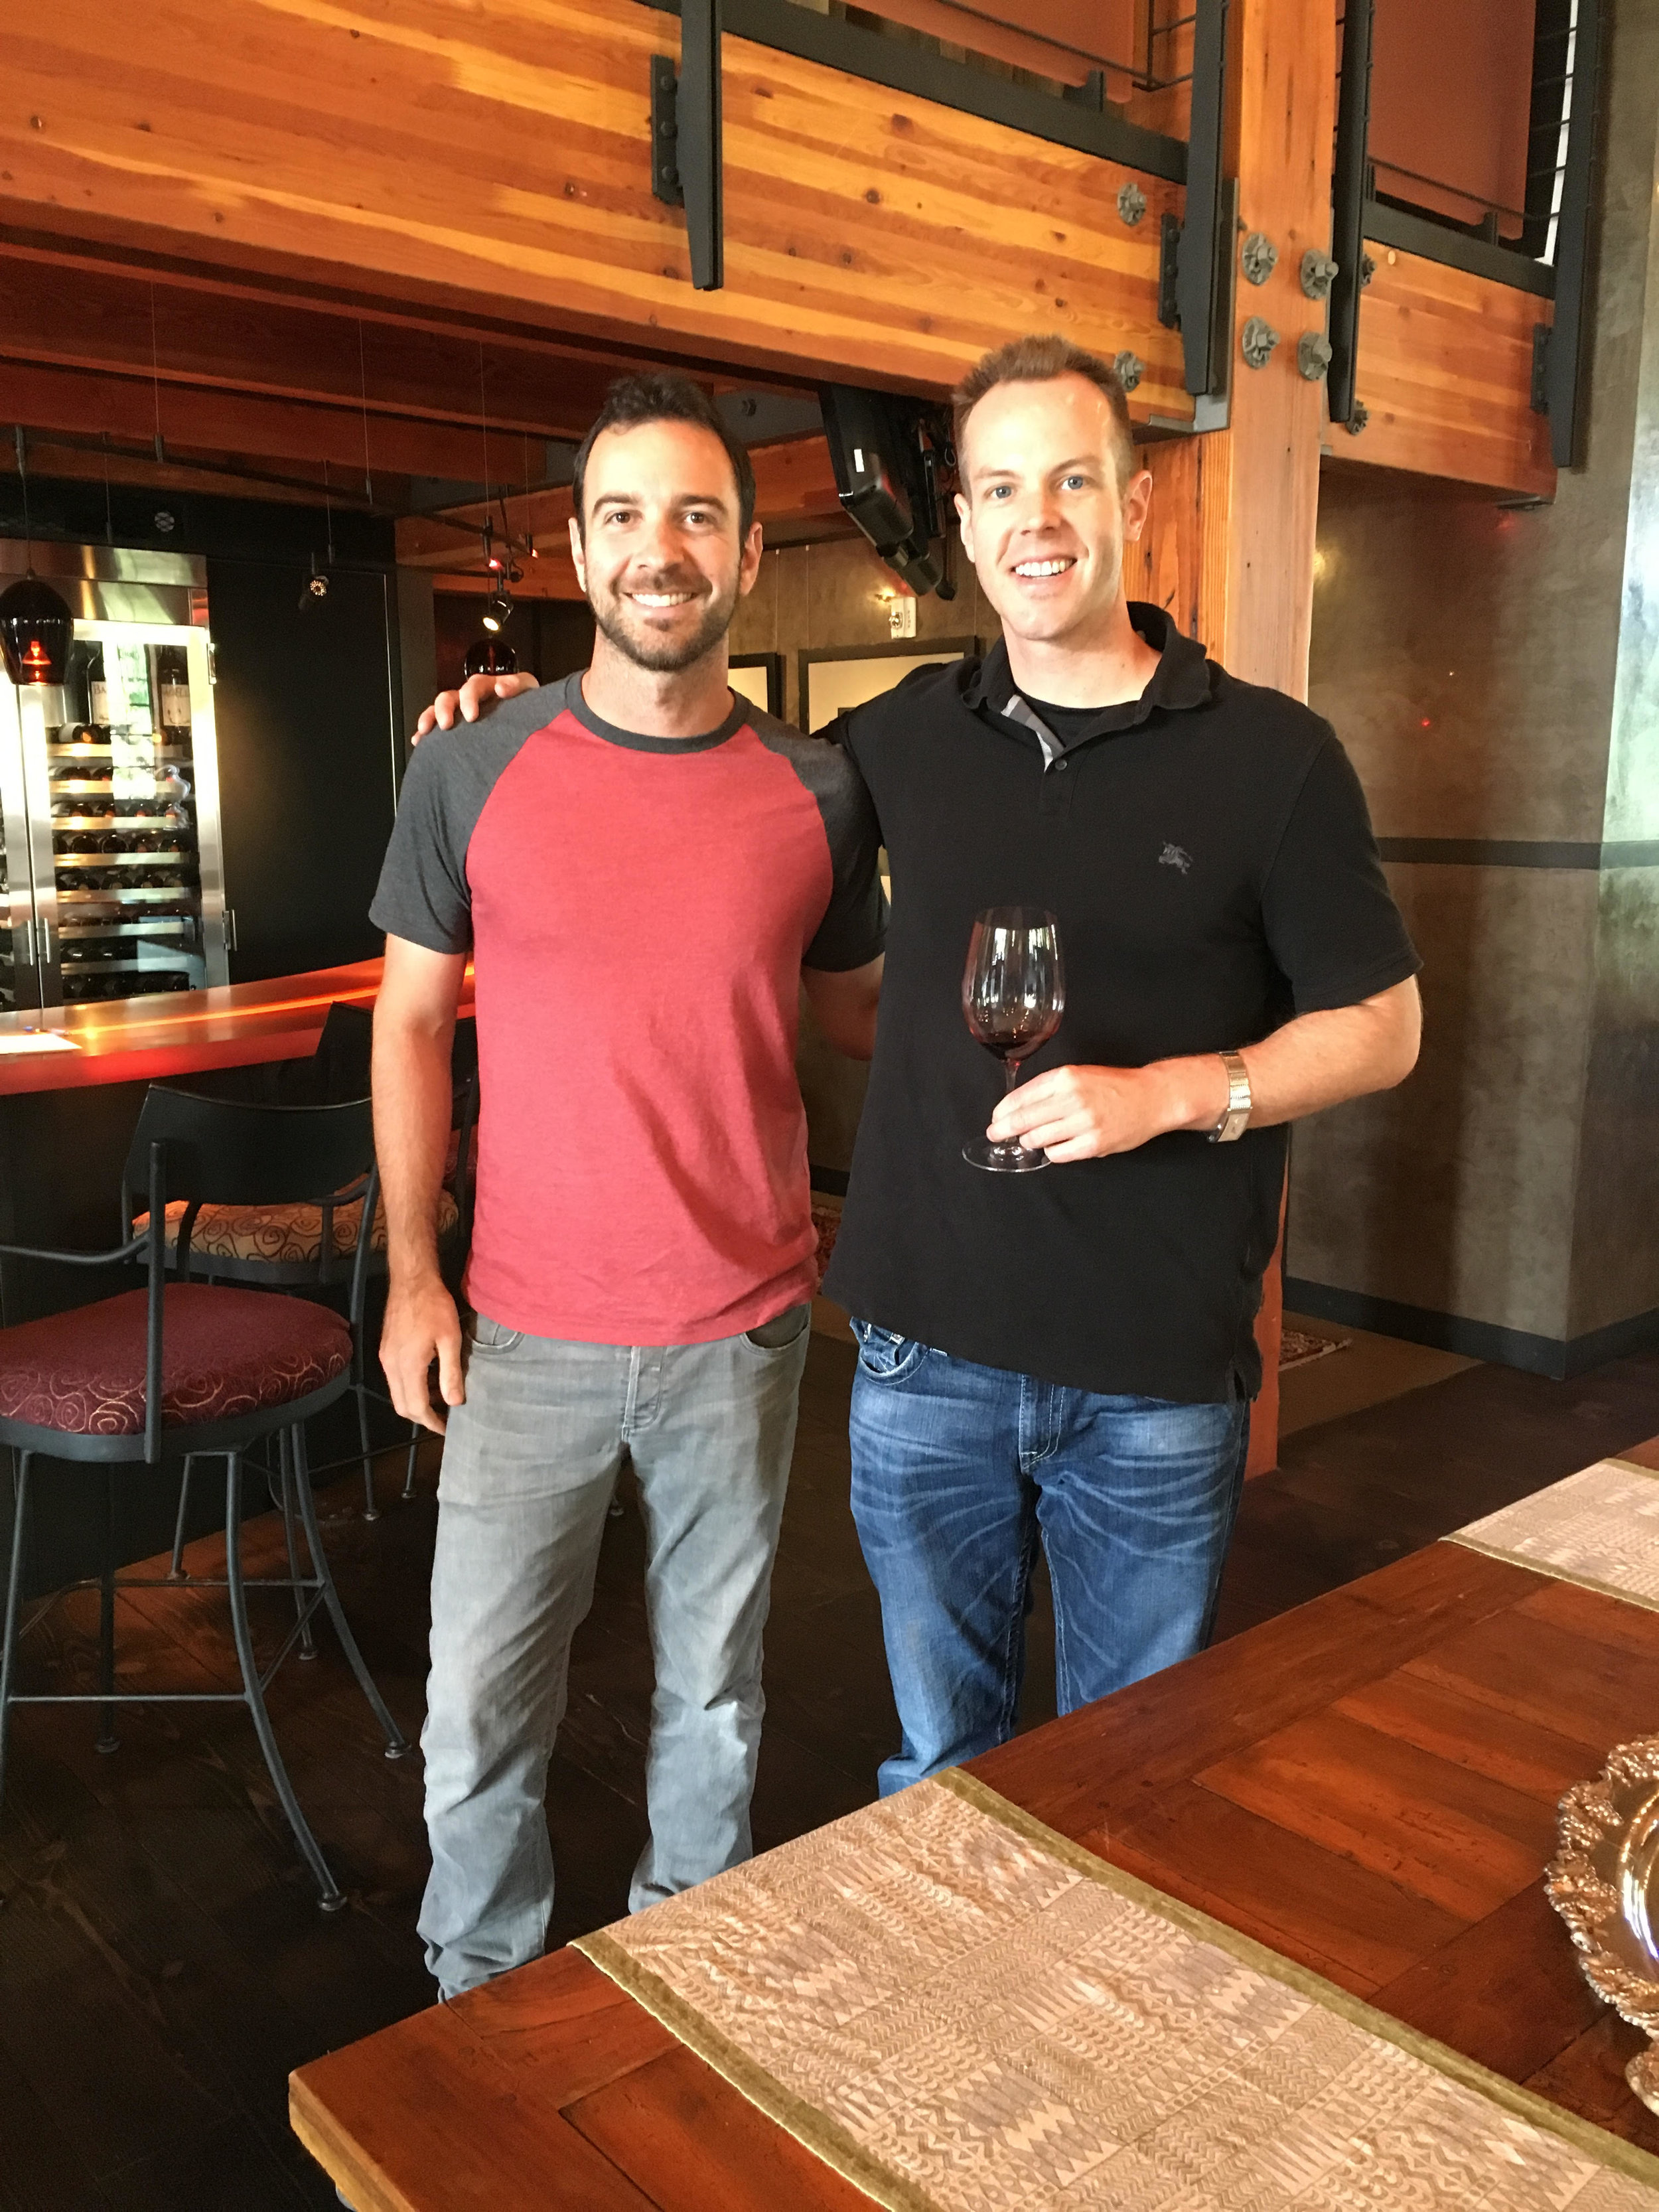 I had the chance to catch up with superstar winemaker at Corliss Estates, Alexander Trio, during my visit there a month ago. He has created some fantastic new release wines.